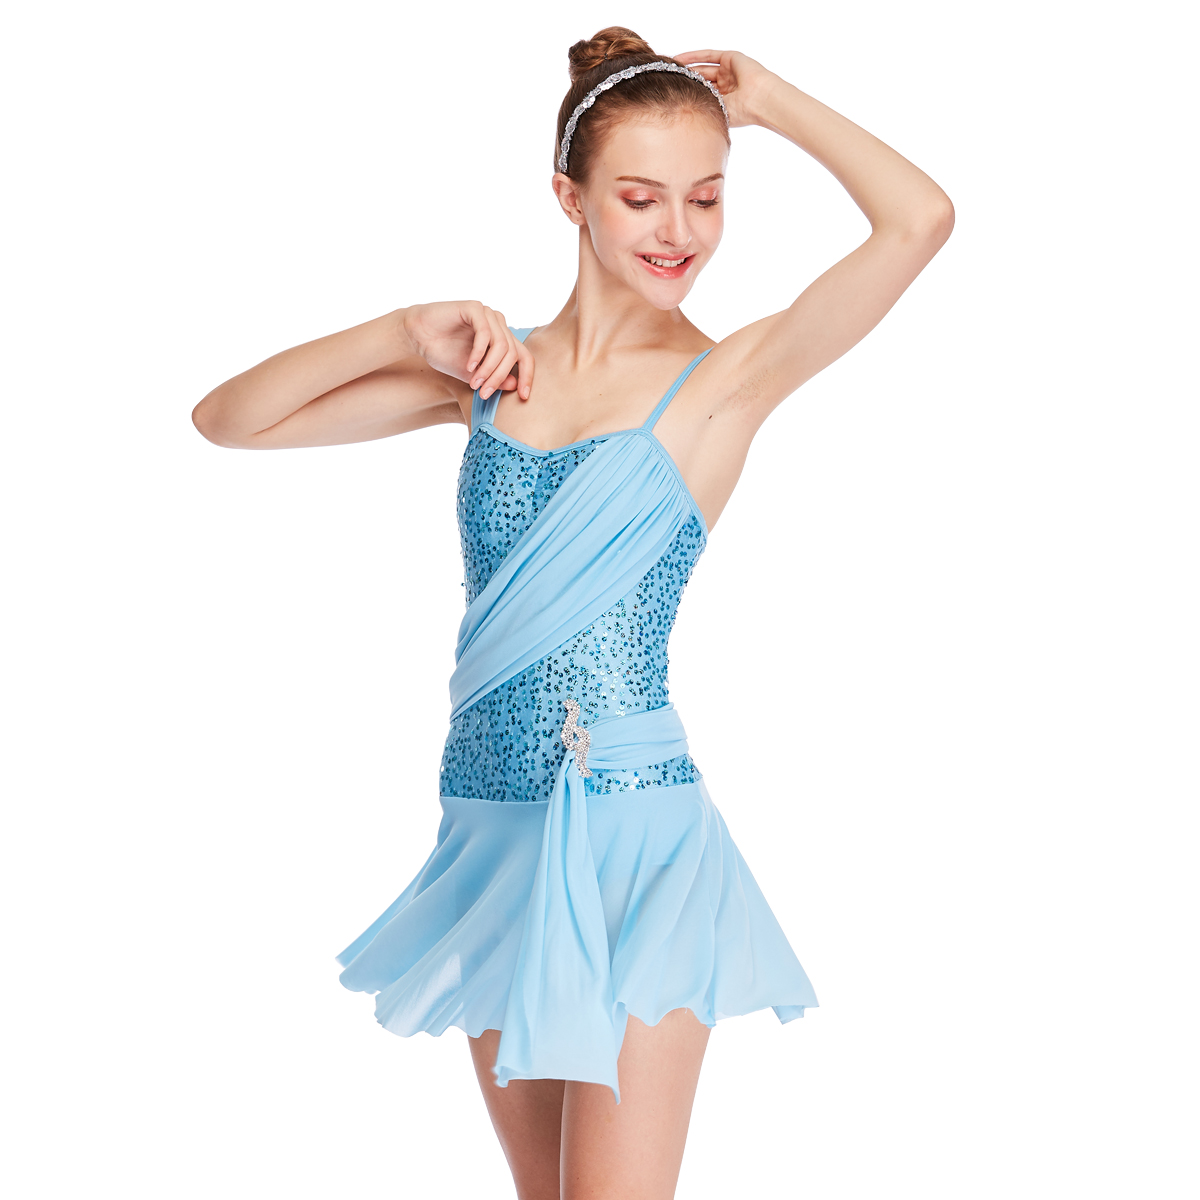 MIDEE OEM lyrical contemporary costumes dance clothes competition-2